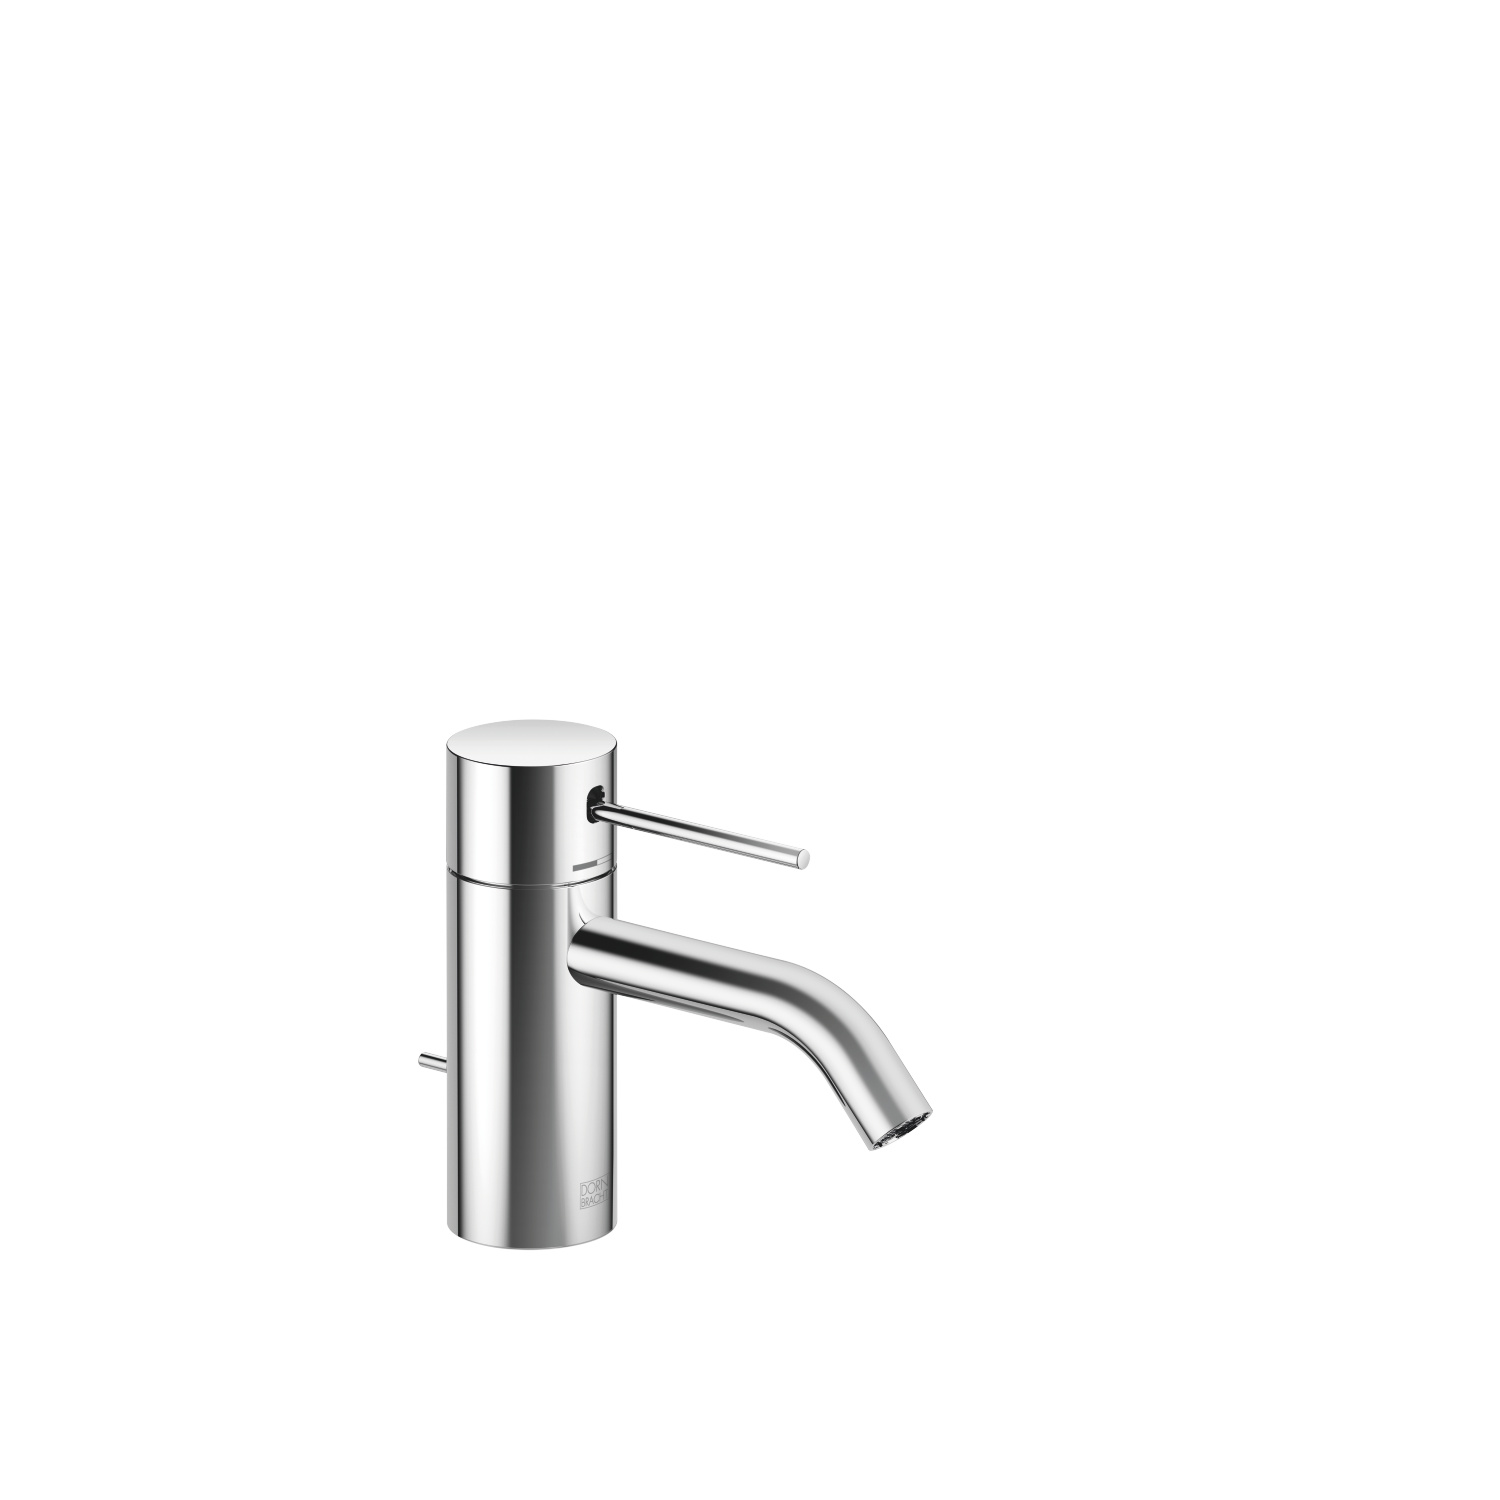 META SLIM Single-lever basin mixer with pop-up waste - polished chrome - 33 501 662-00